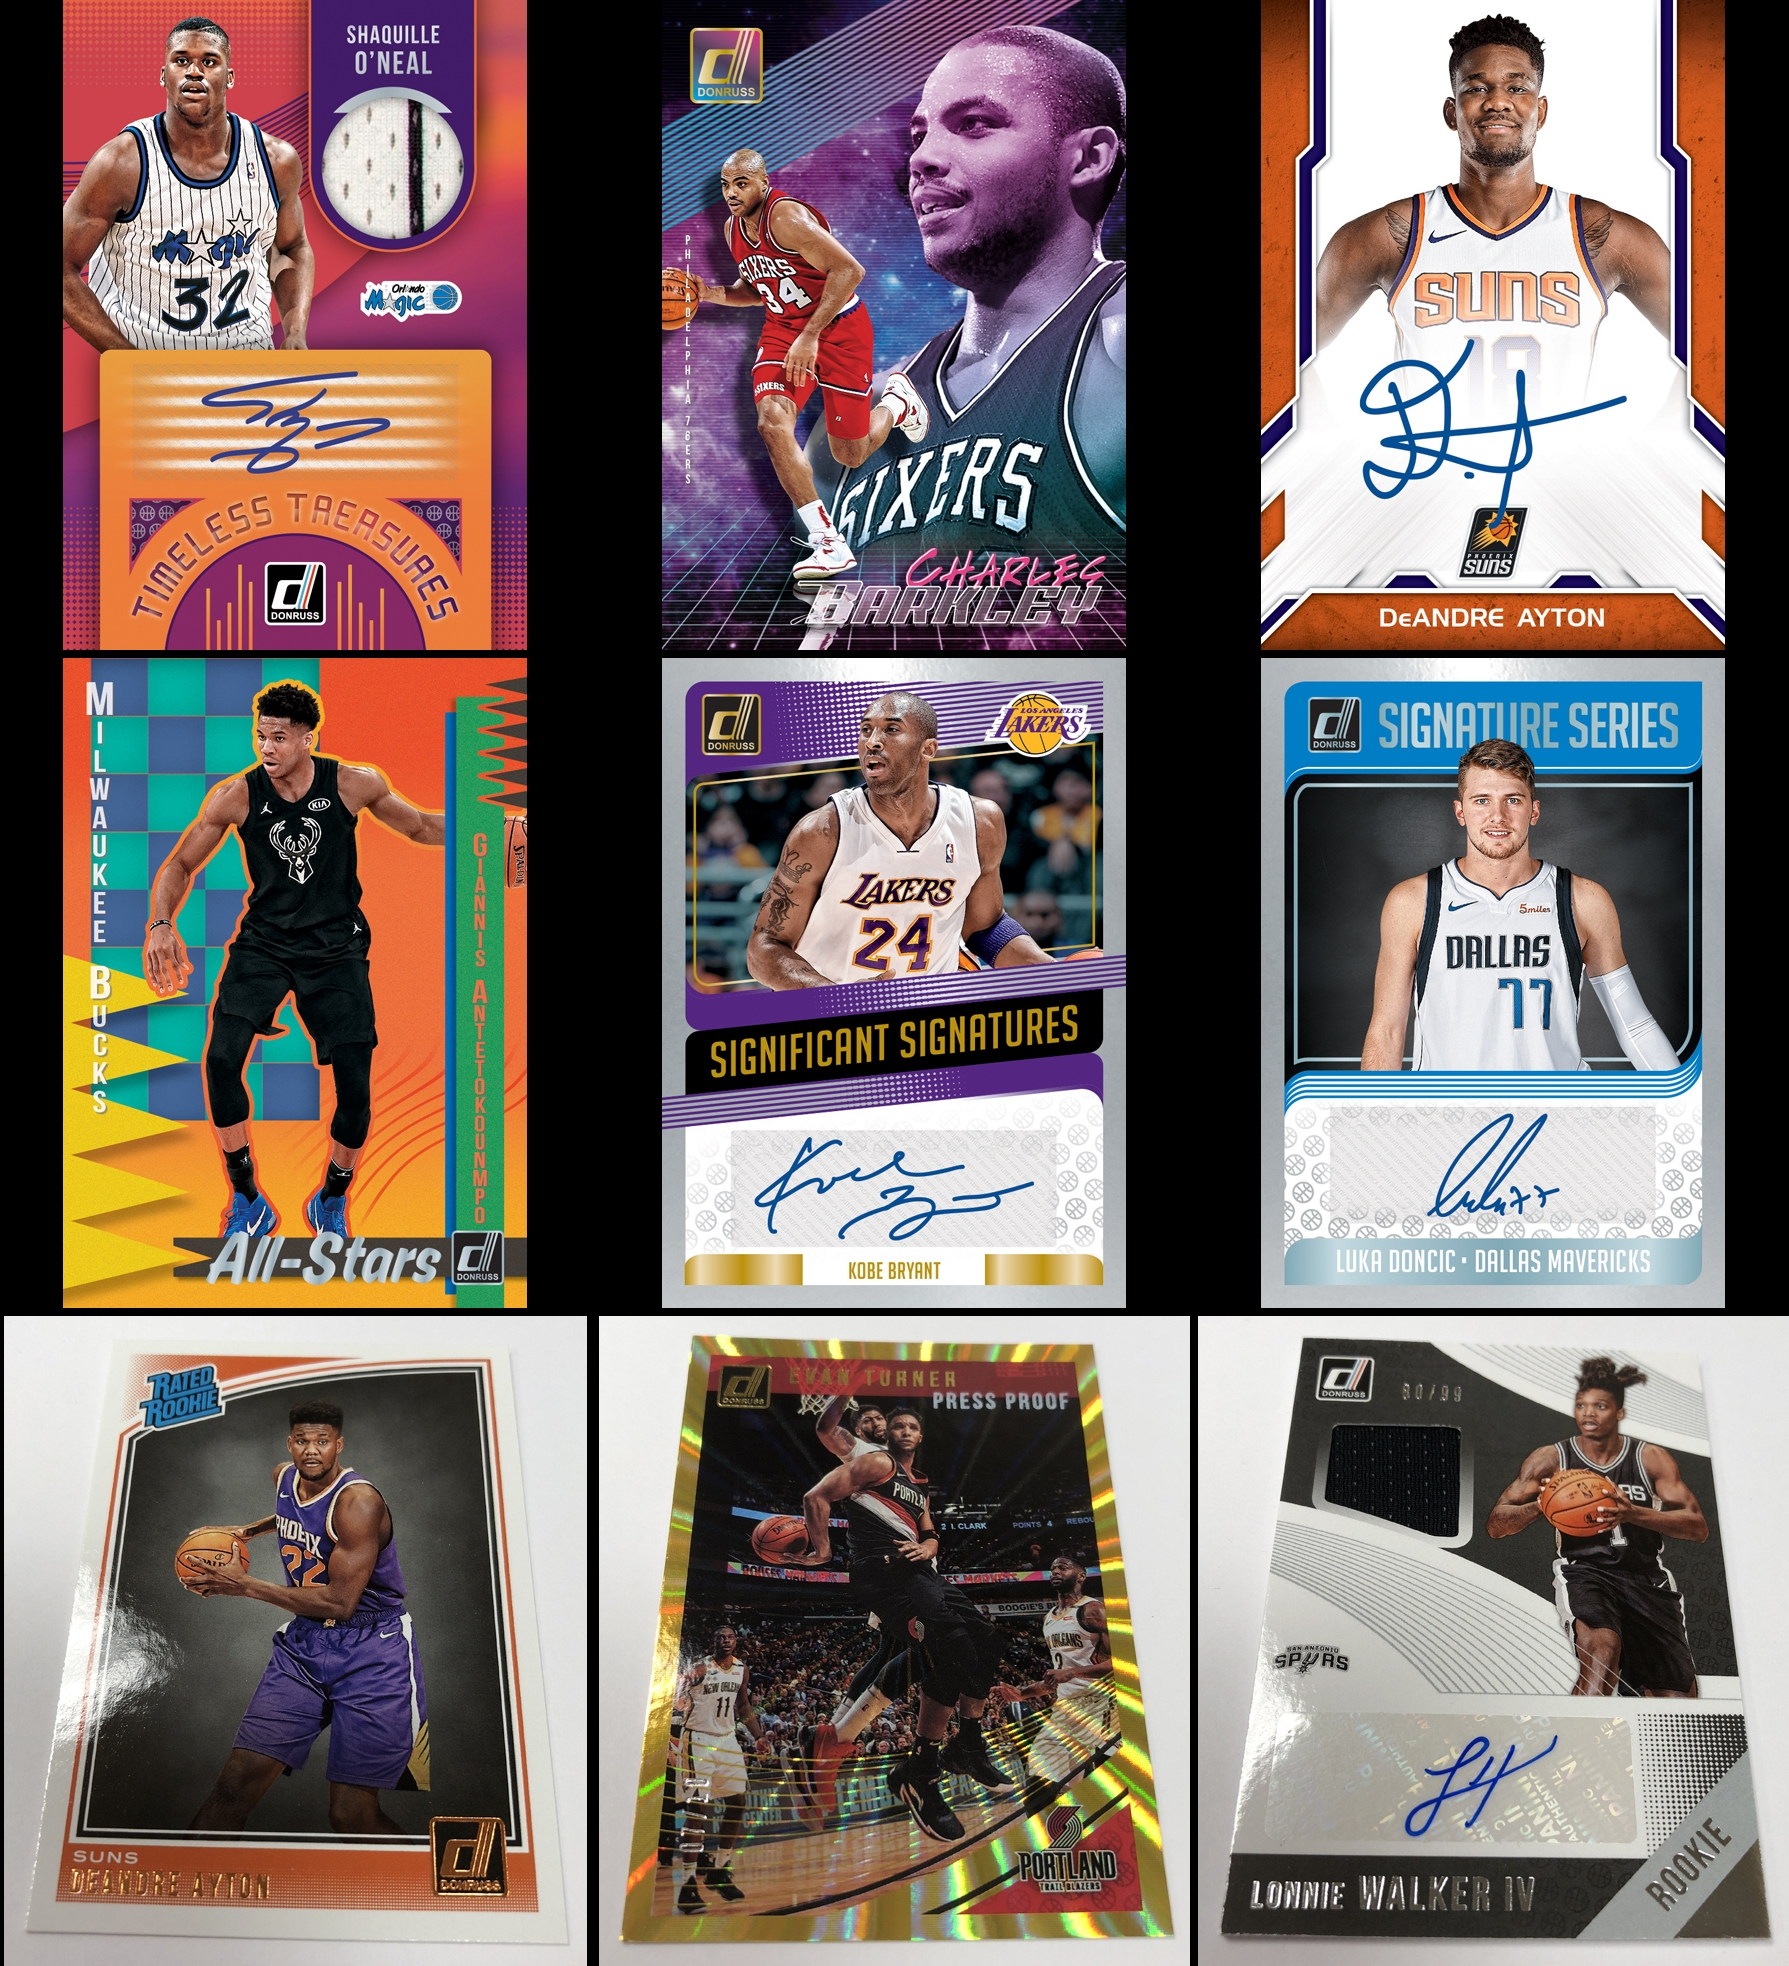 70ac1da8 18/19 Donruss Basketball – Singles and Box Prices on Ebay · Most Popular  Ebay Card Auctions Ending Tonight – Click Here